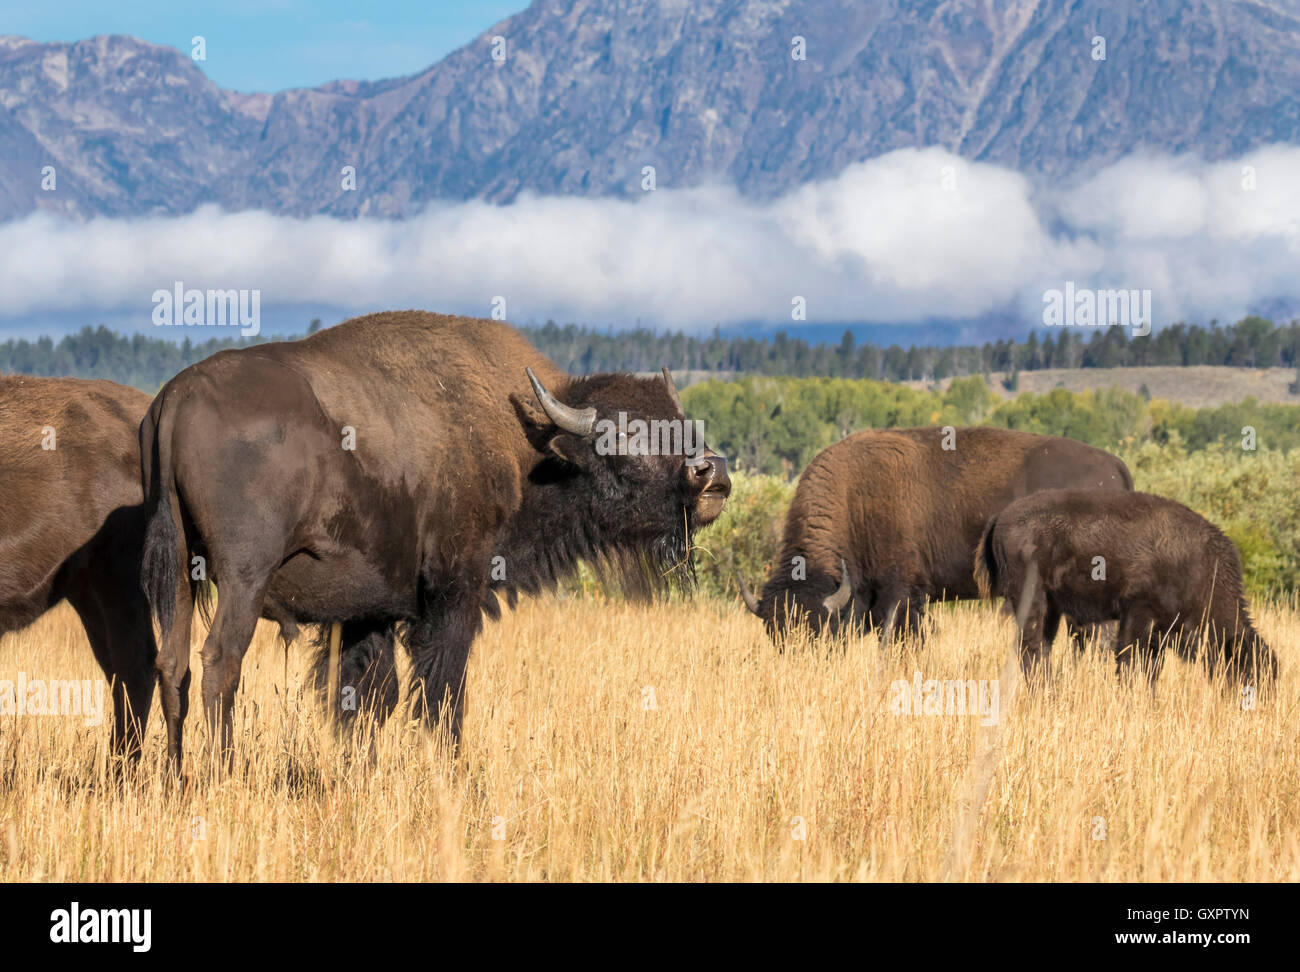 Amerikanische Bisons (Bison Bison) Weiden in Highland Prärie, Grand-Teton-Nationalpark, Wyoming, USA Stockbild